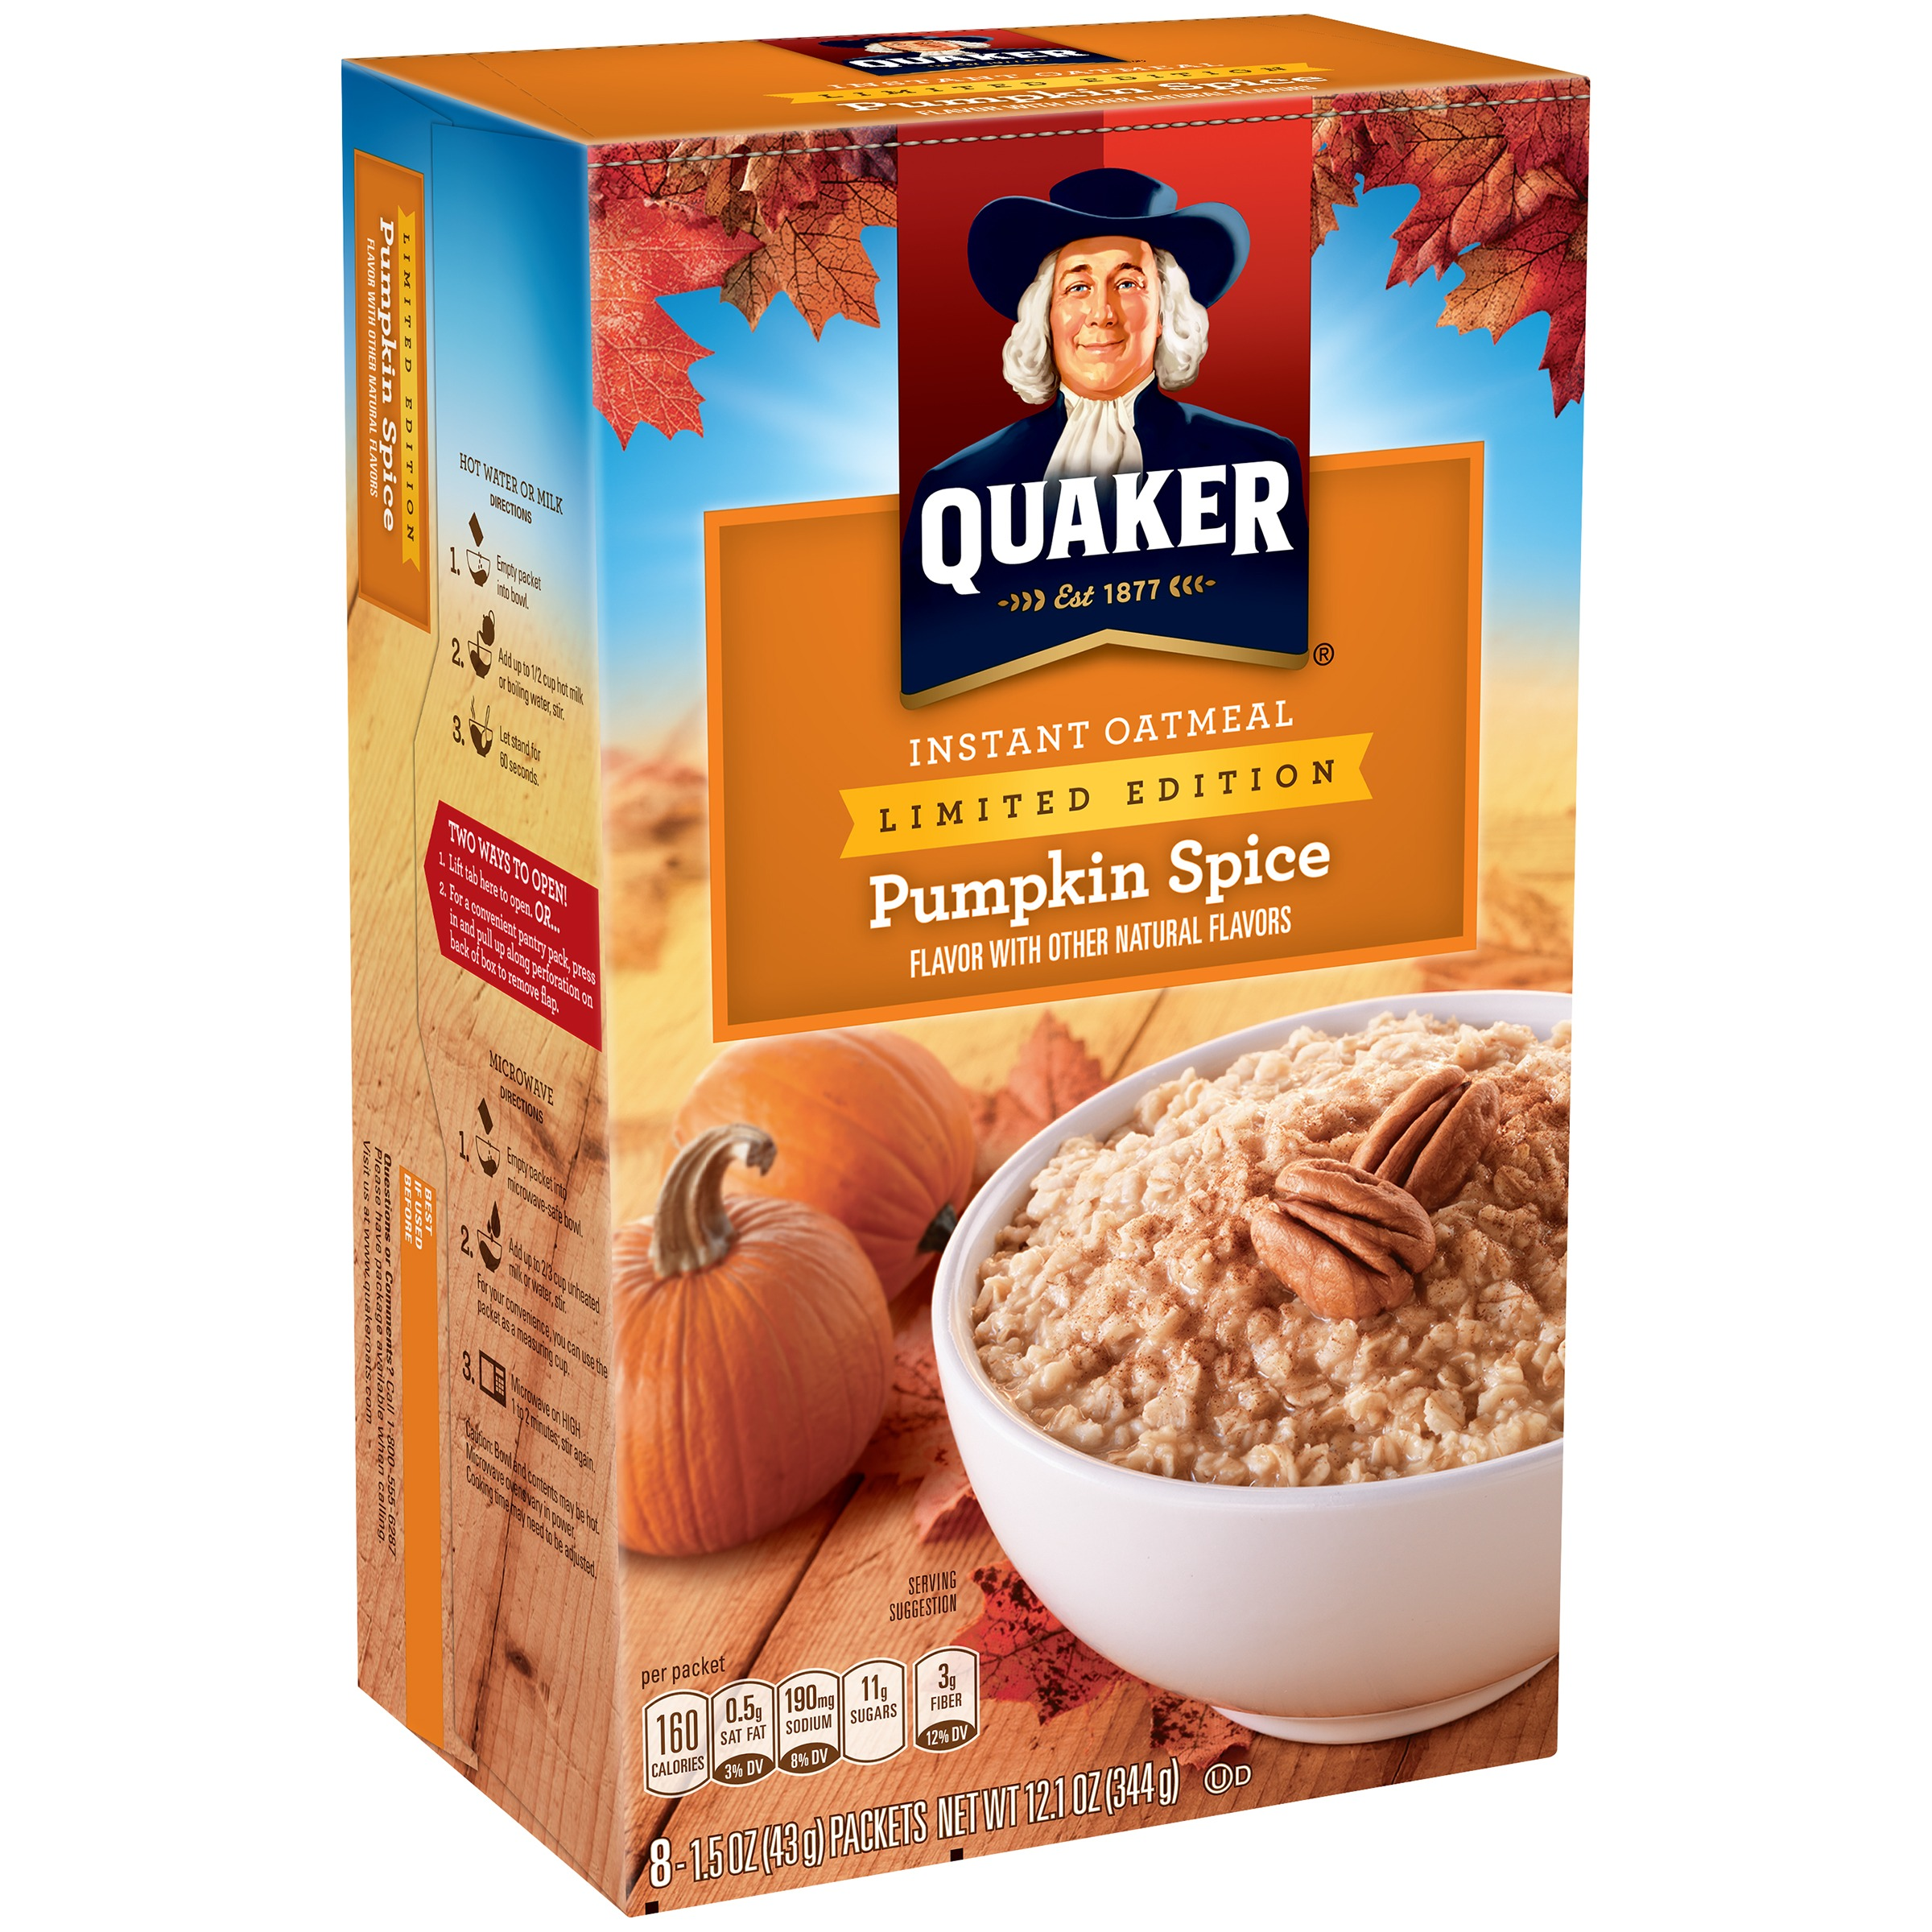 Quaker Pumpkin Spice Instant Oatmeal 151 Oz Packets 8 Count